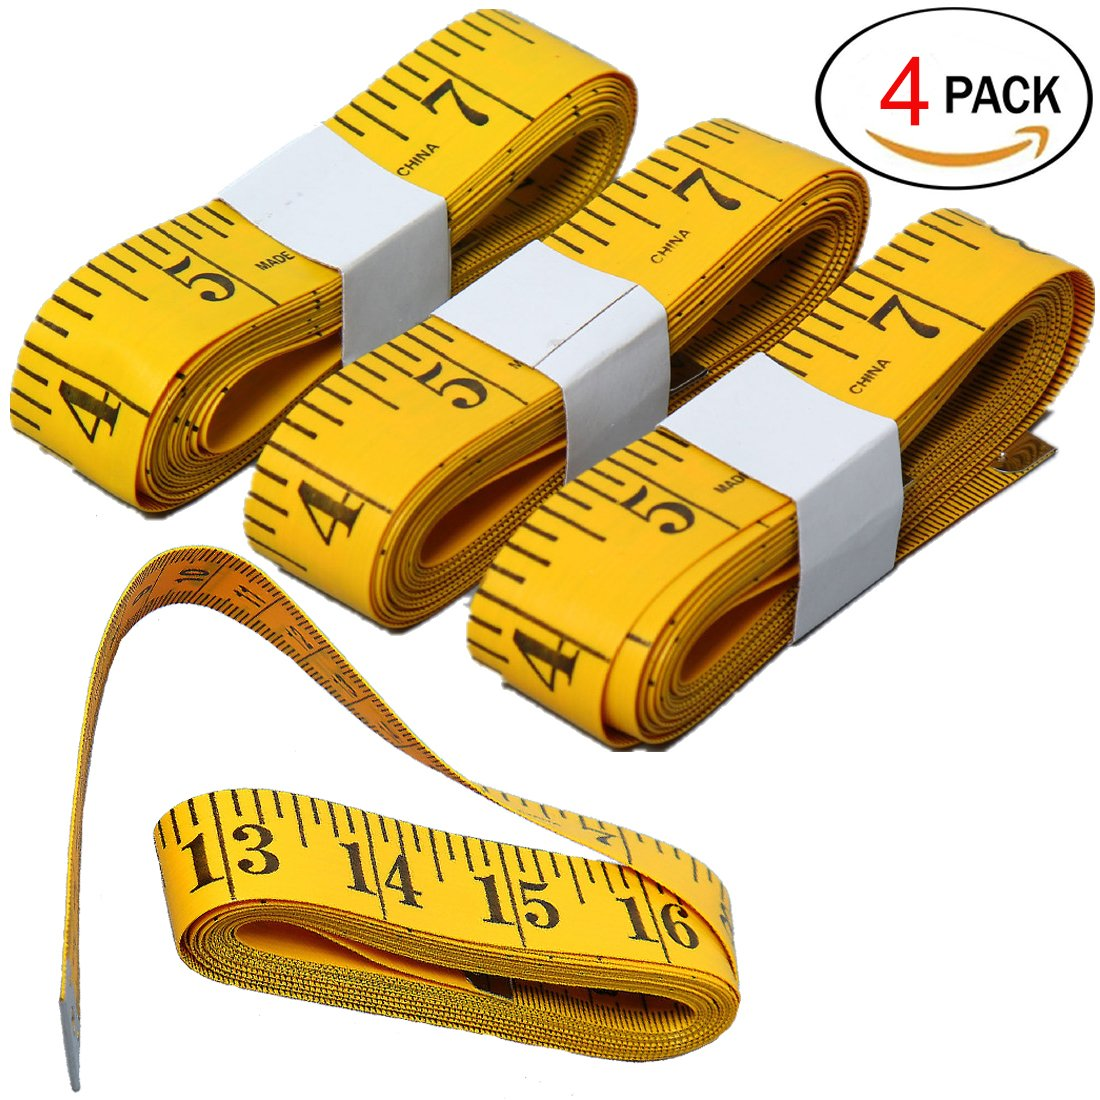 HSELL Pack of 4pcs 300cm/120inch Flexible Tape Measure Double-scale Soft Tape Weight Loss Medical Body Measurement Sewing Tailor Cloth Ruler Dressmaker Flexible Ruler Heavy Suty Tape Measure MS013